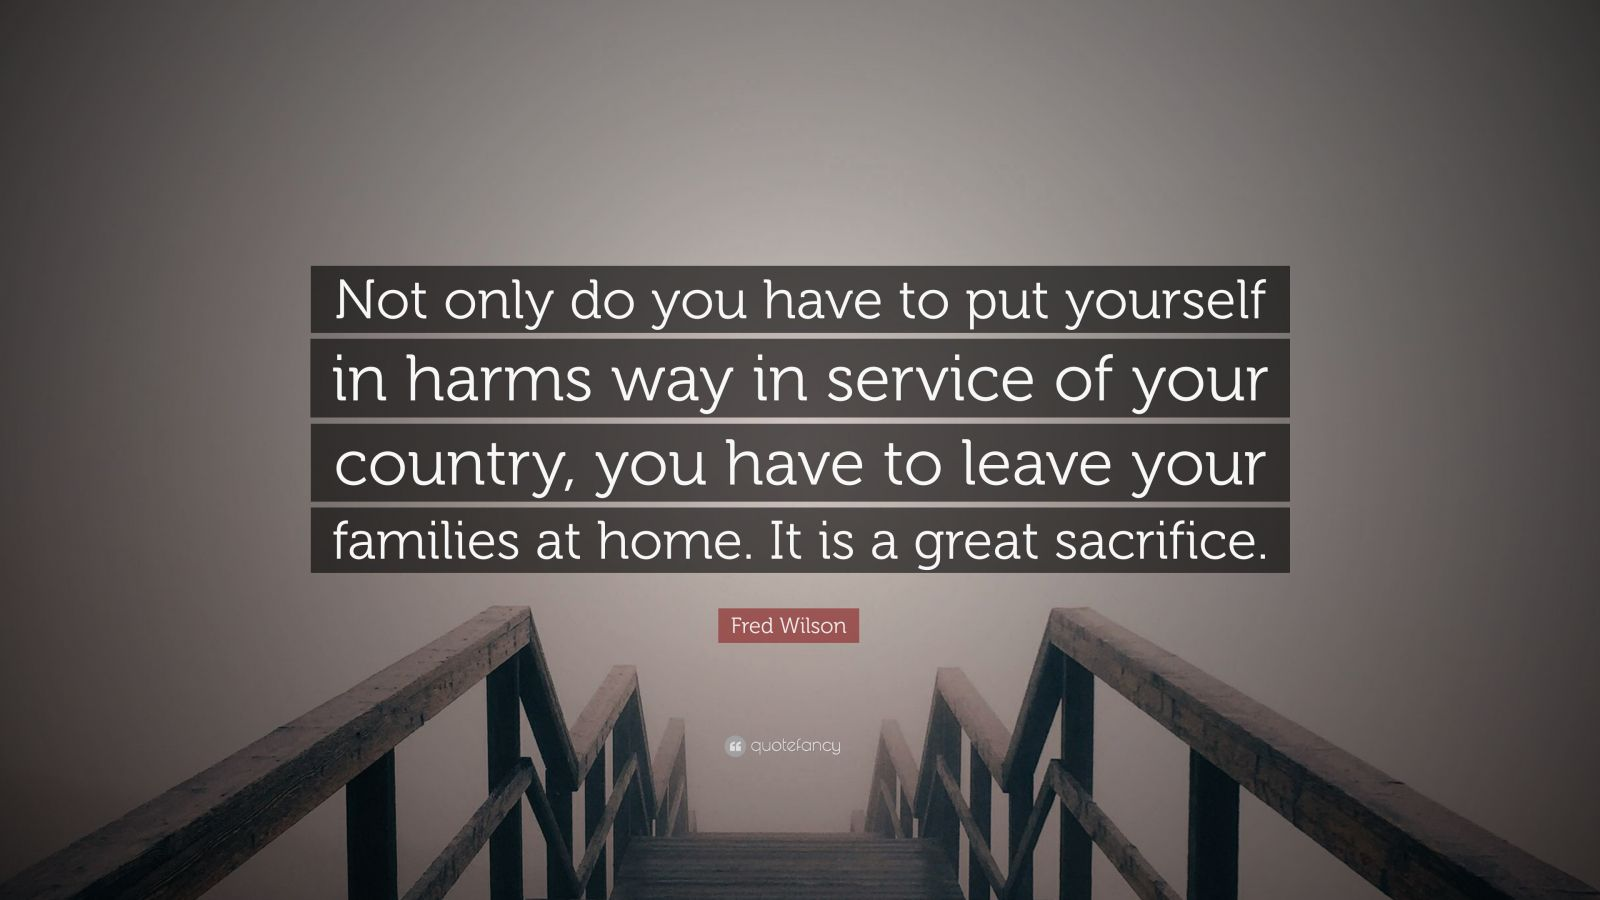 """Fred Wilson Quote: """"Not only do you have to put yourself in harms way in service of your country, you have to leave your families at home. It is a great sacrifice."""""""